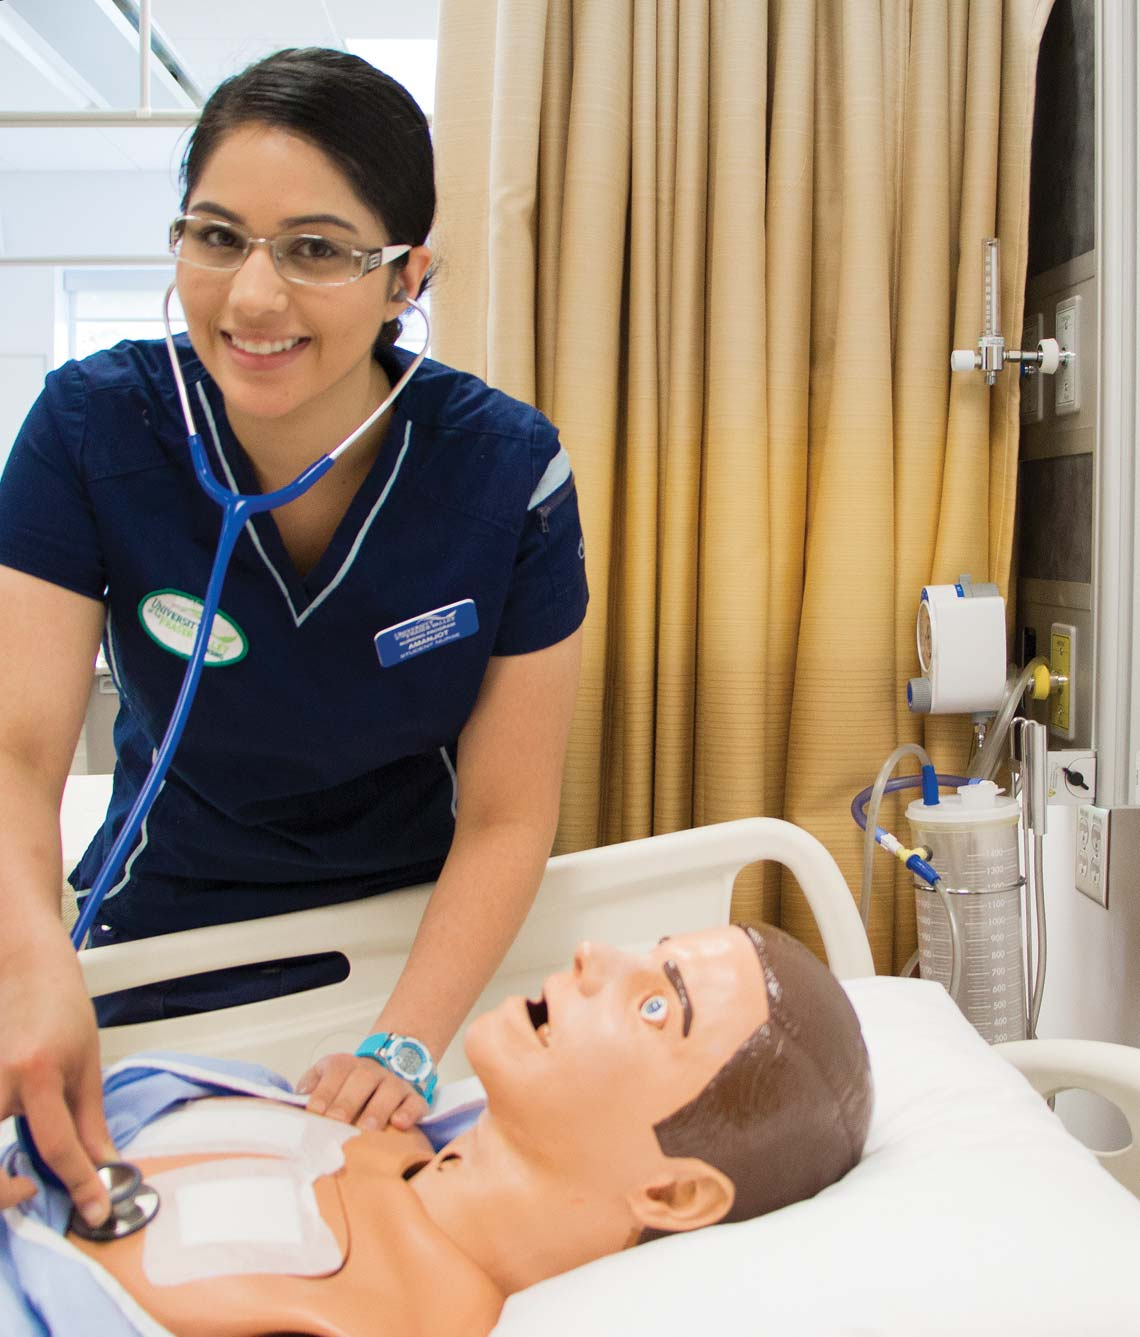 Make a healthy difference as a Registered Nurse